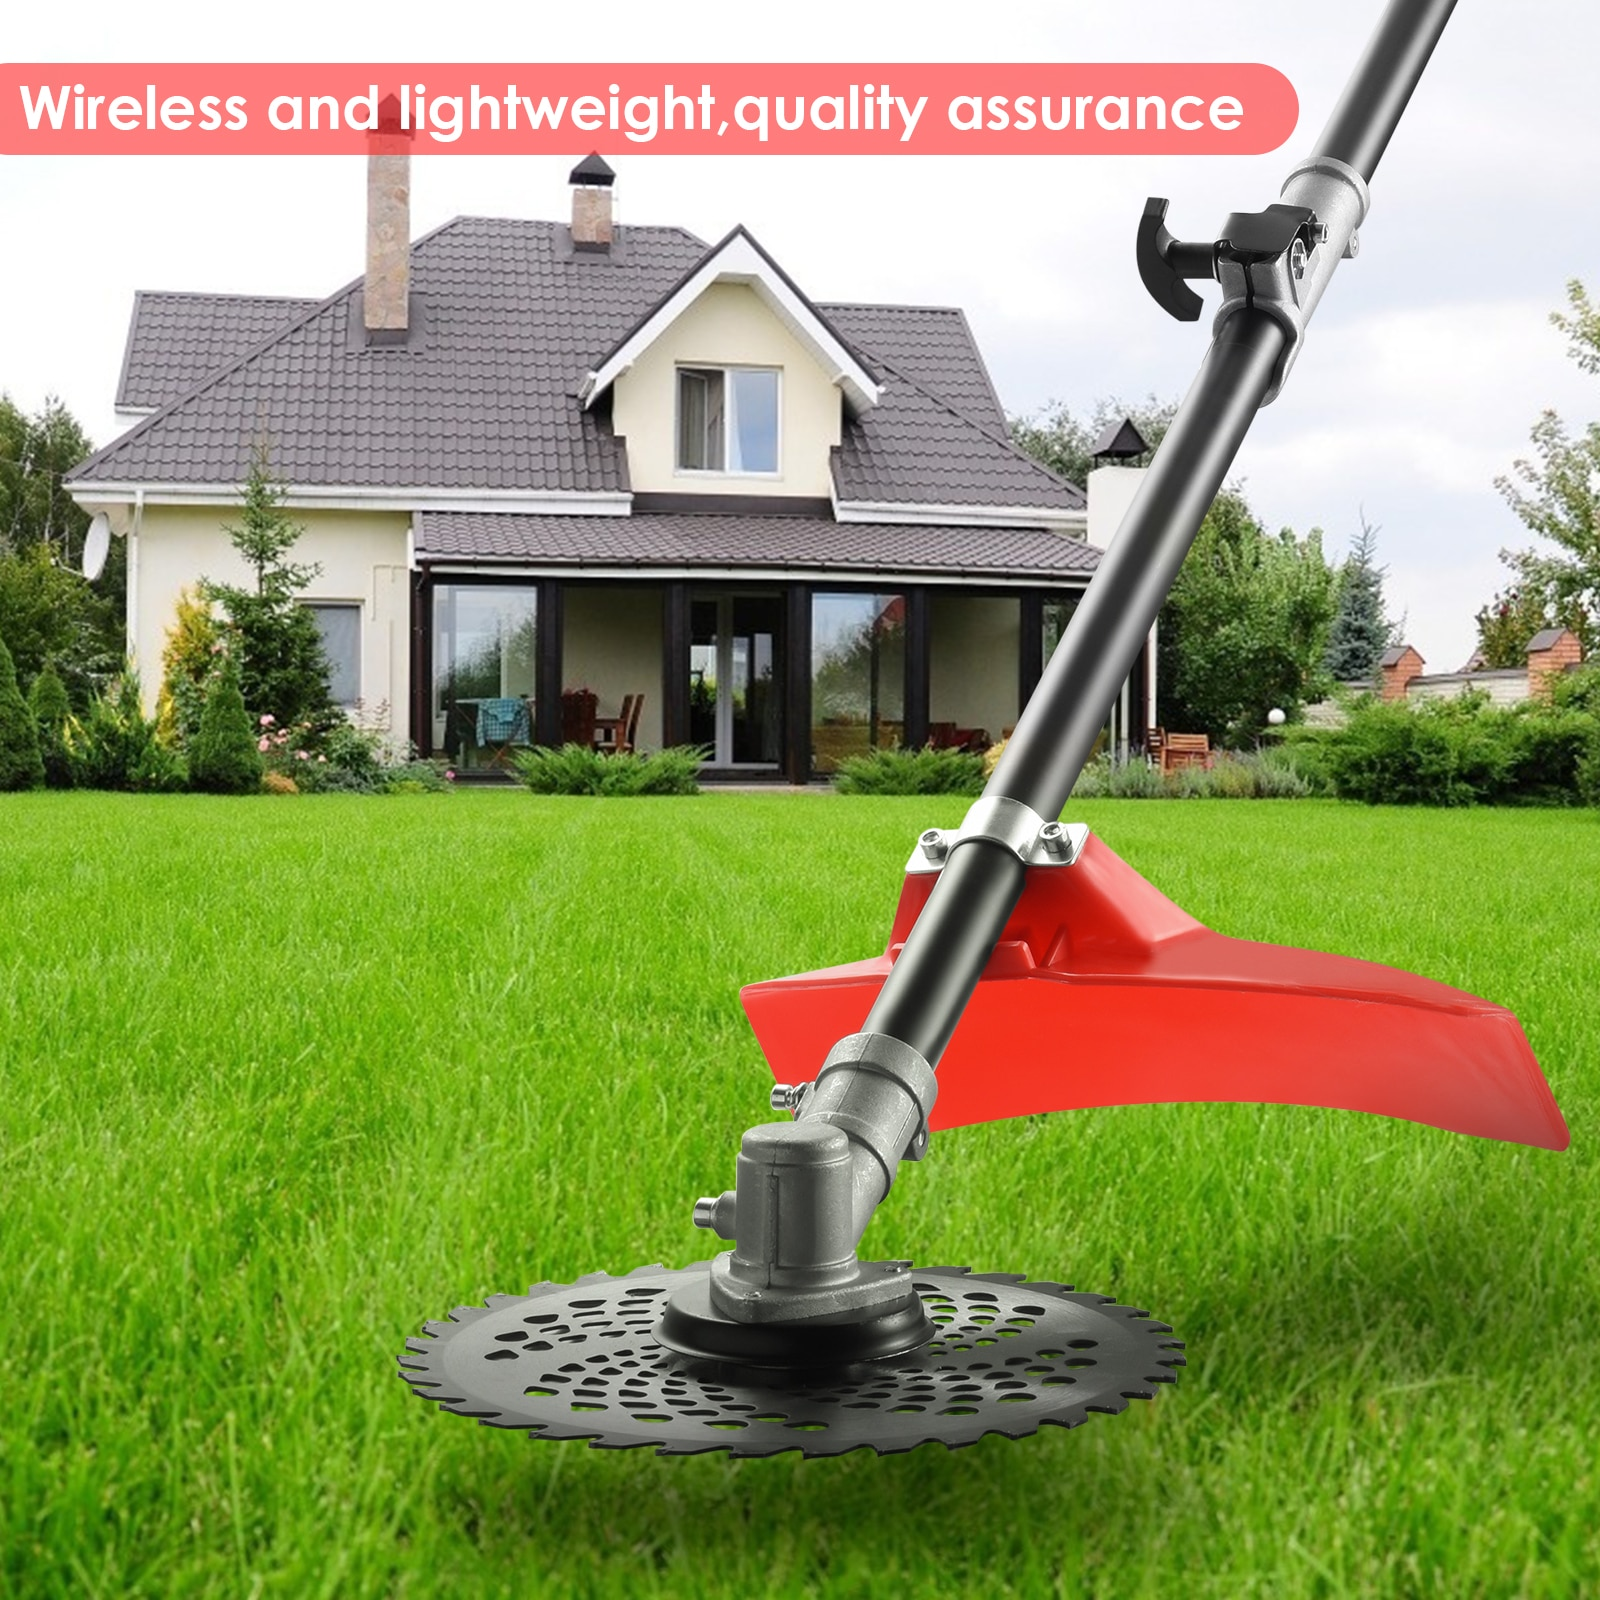 48V 2 In 1 Lawn Mower Brush Cutter Weed Straight Shaft String Trimmer With 2 Detachable Head Electric Trimmer Bush Garden Tools